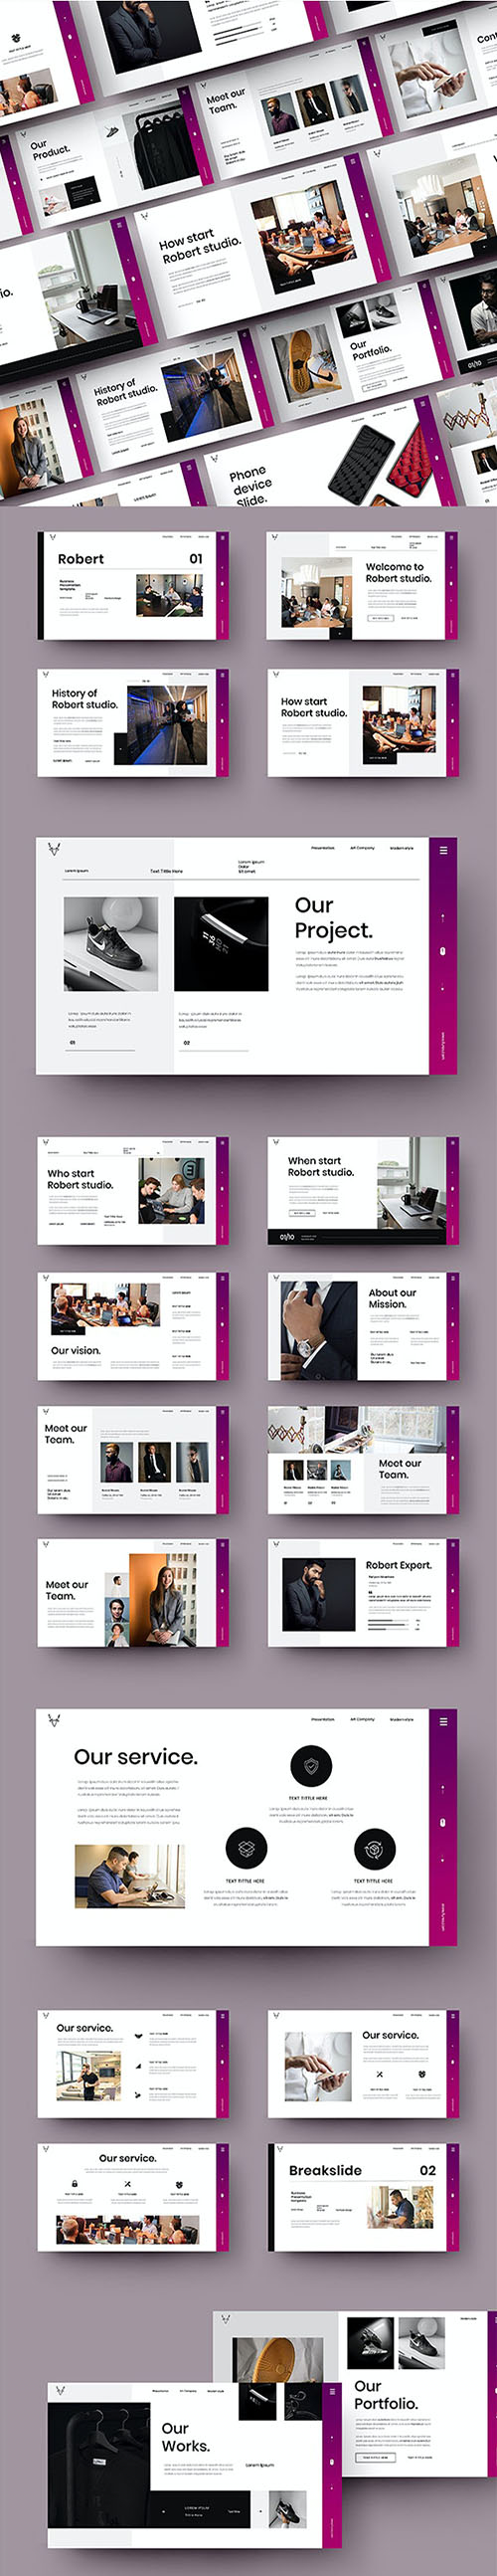 Robert - Business Powerpoint, Keynote and Google Slides Template